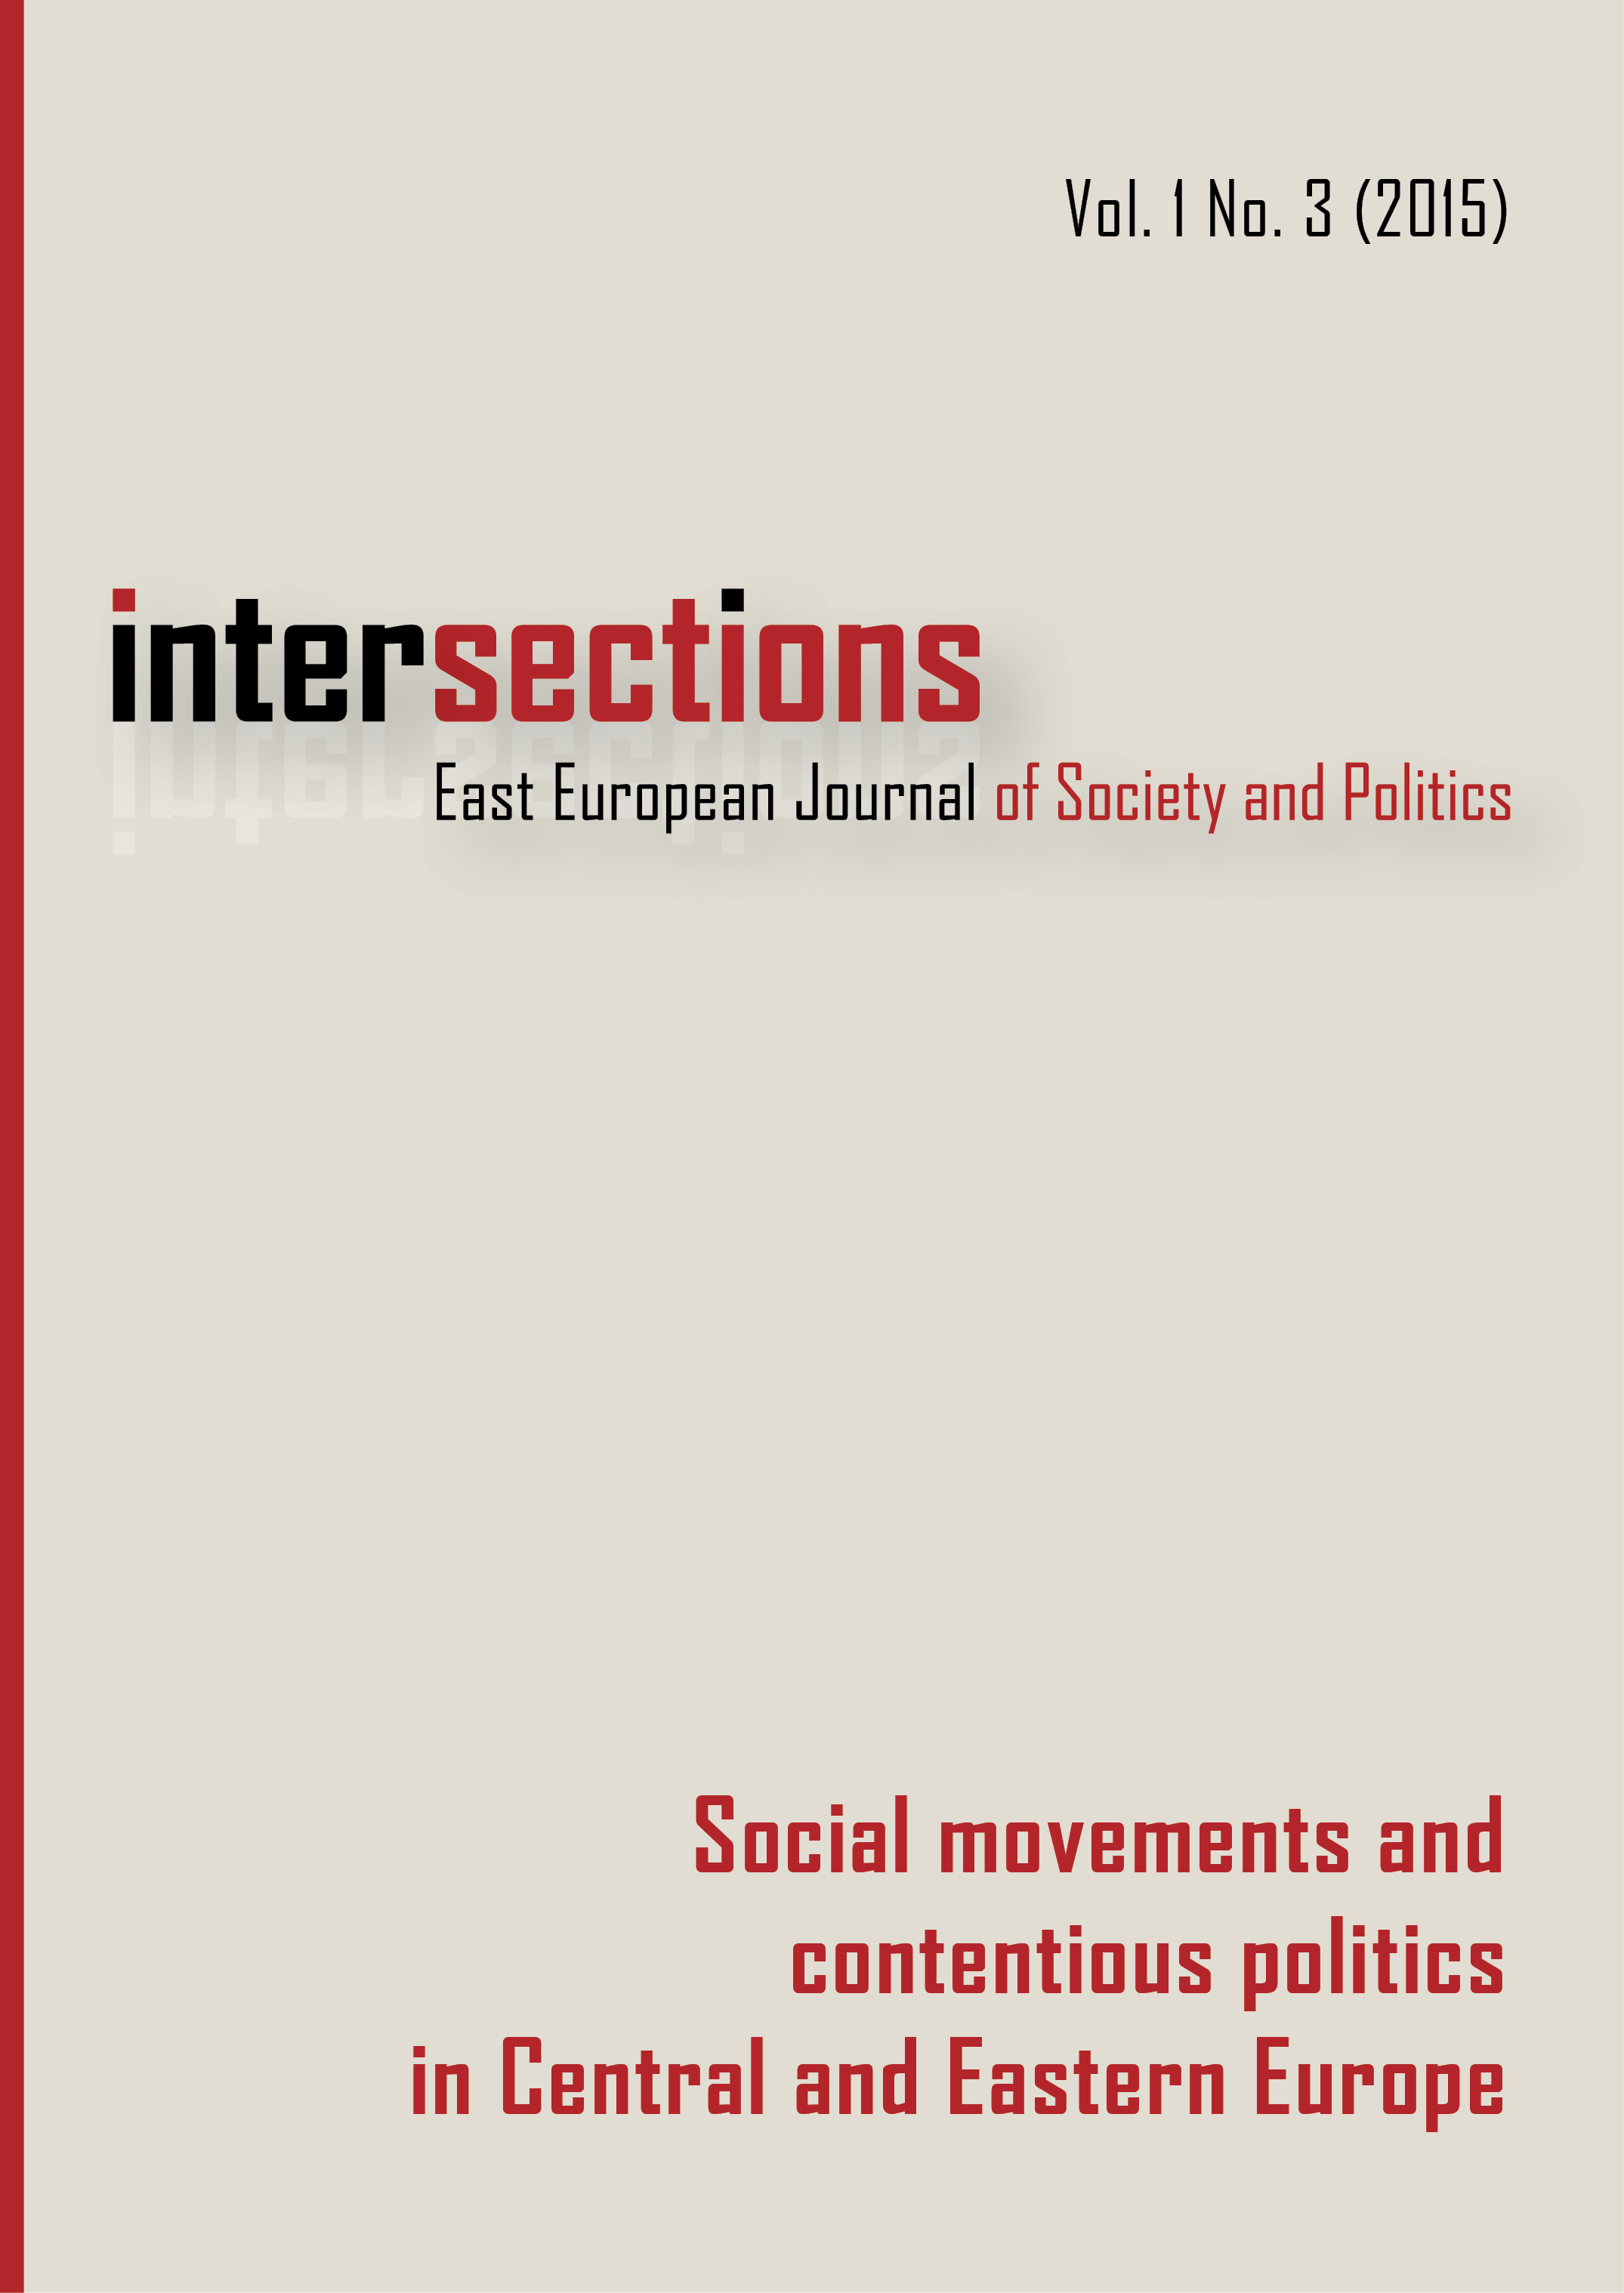 View Vol. 1 No. 3 (2015): Social Movements and Contentious Politics in Central and Eastern Europe